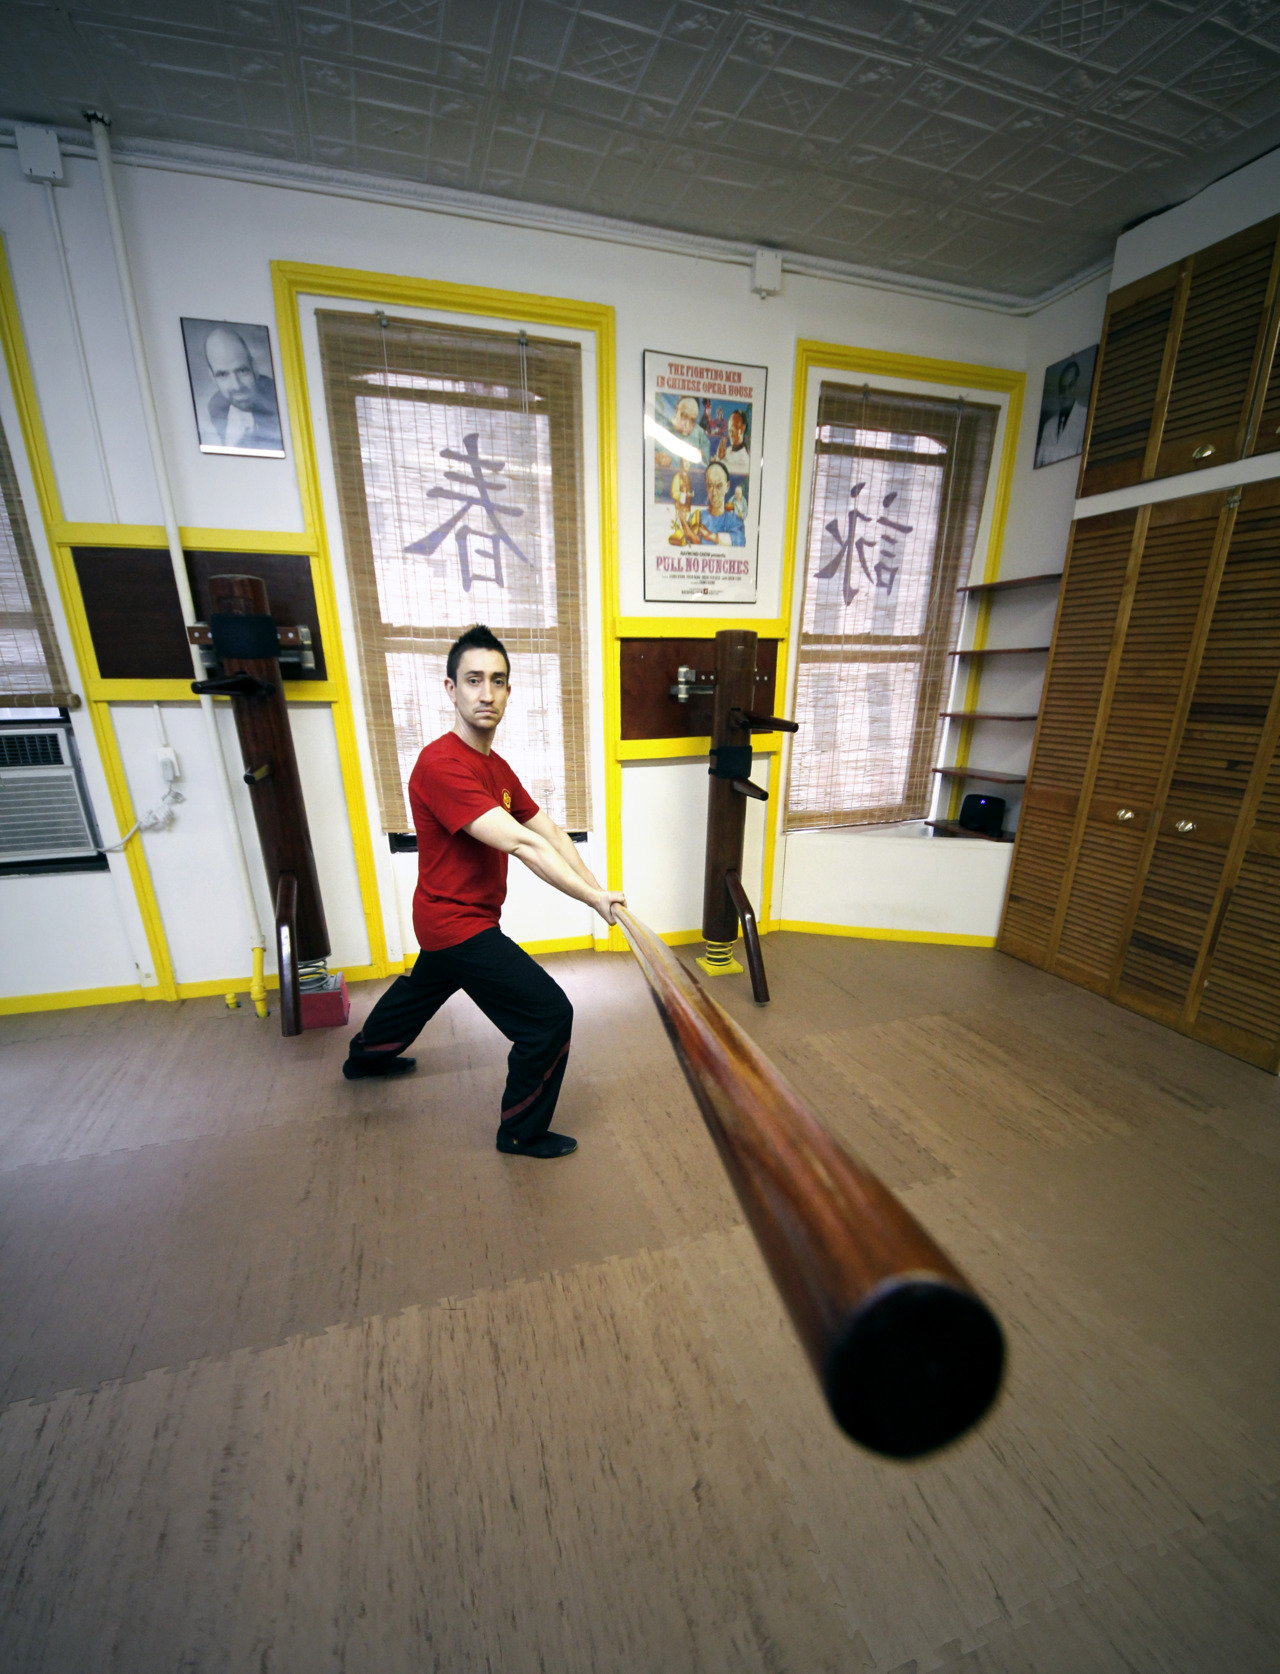 From last week's long pole photo shoot with Sifu Alex. For more Kung Fu photos, videos and information, be sure to check out our facebook page.